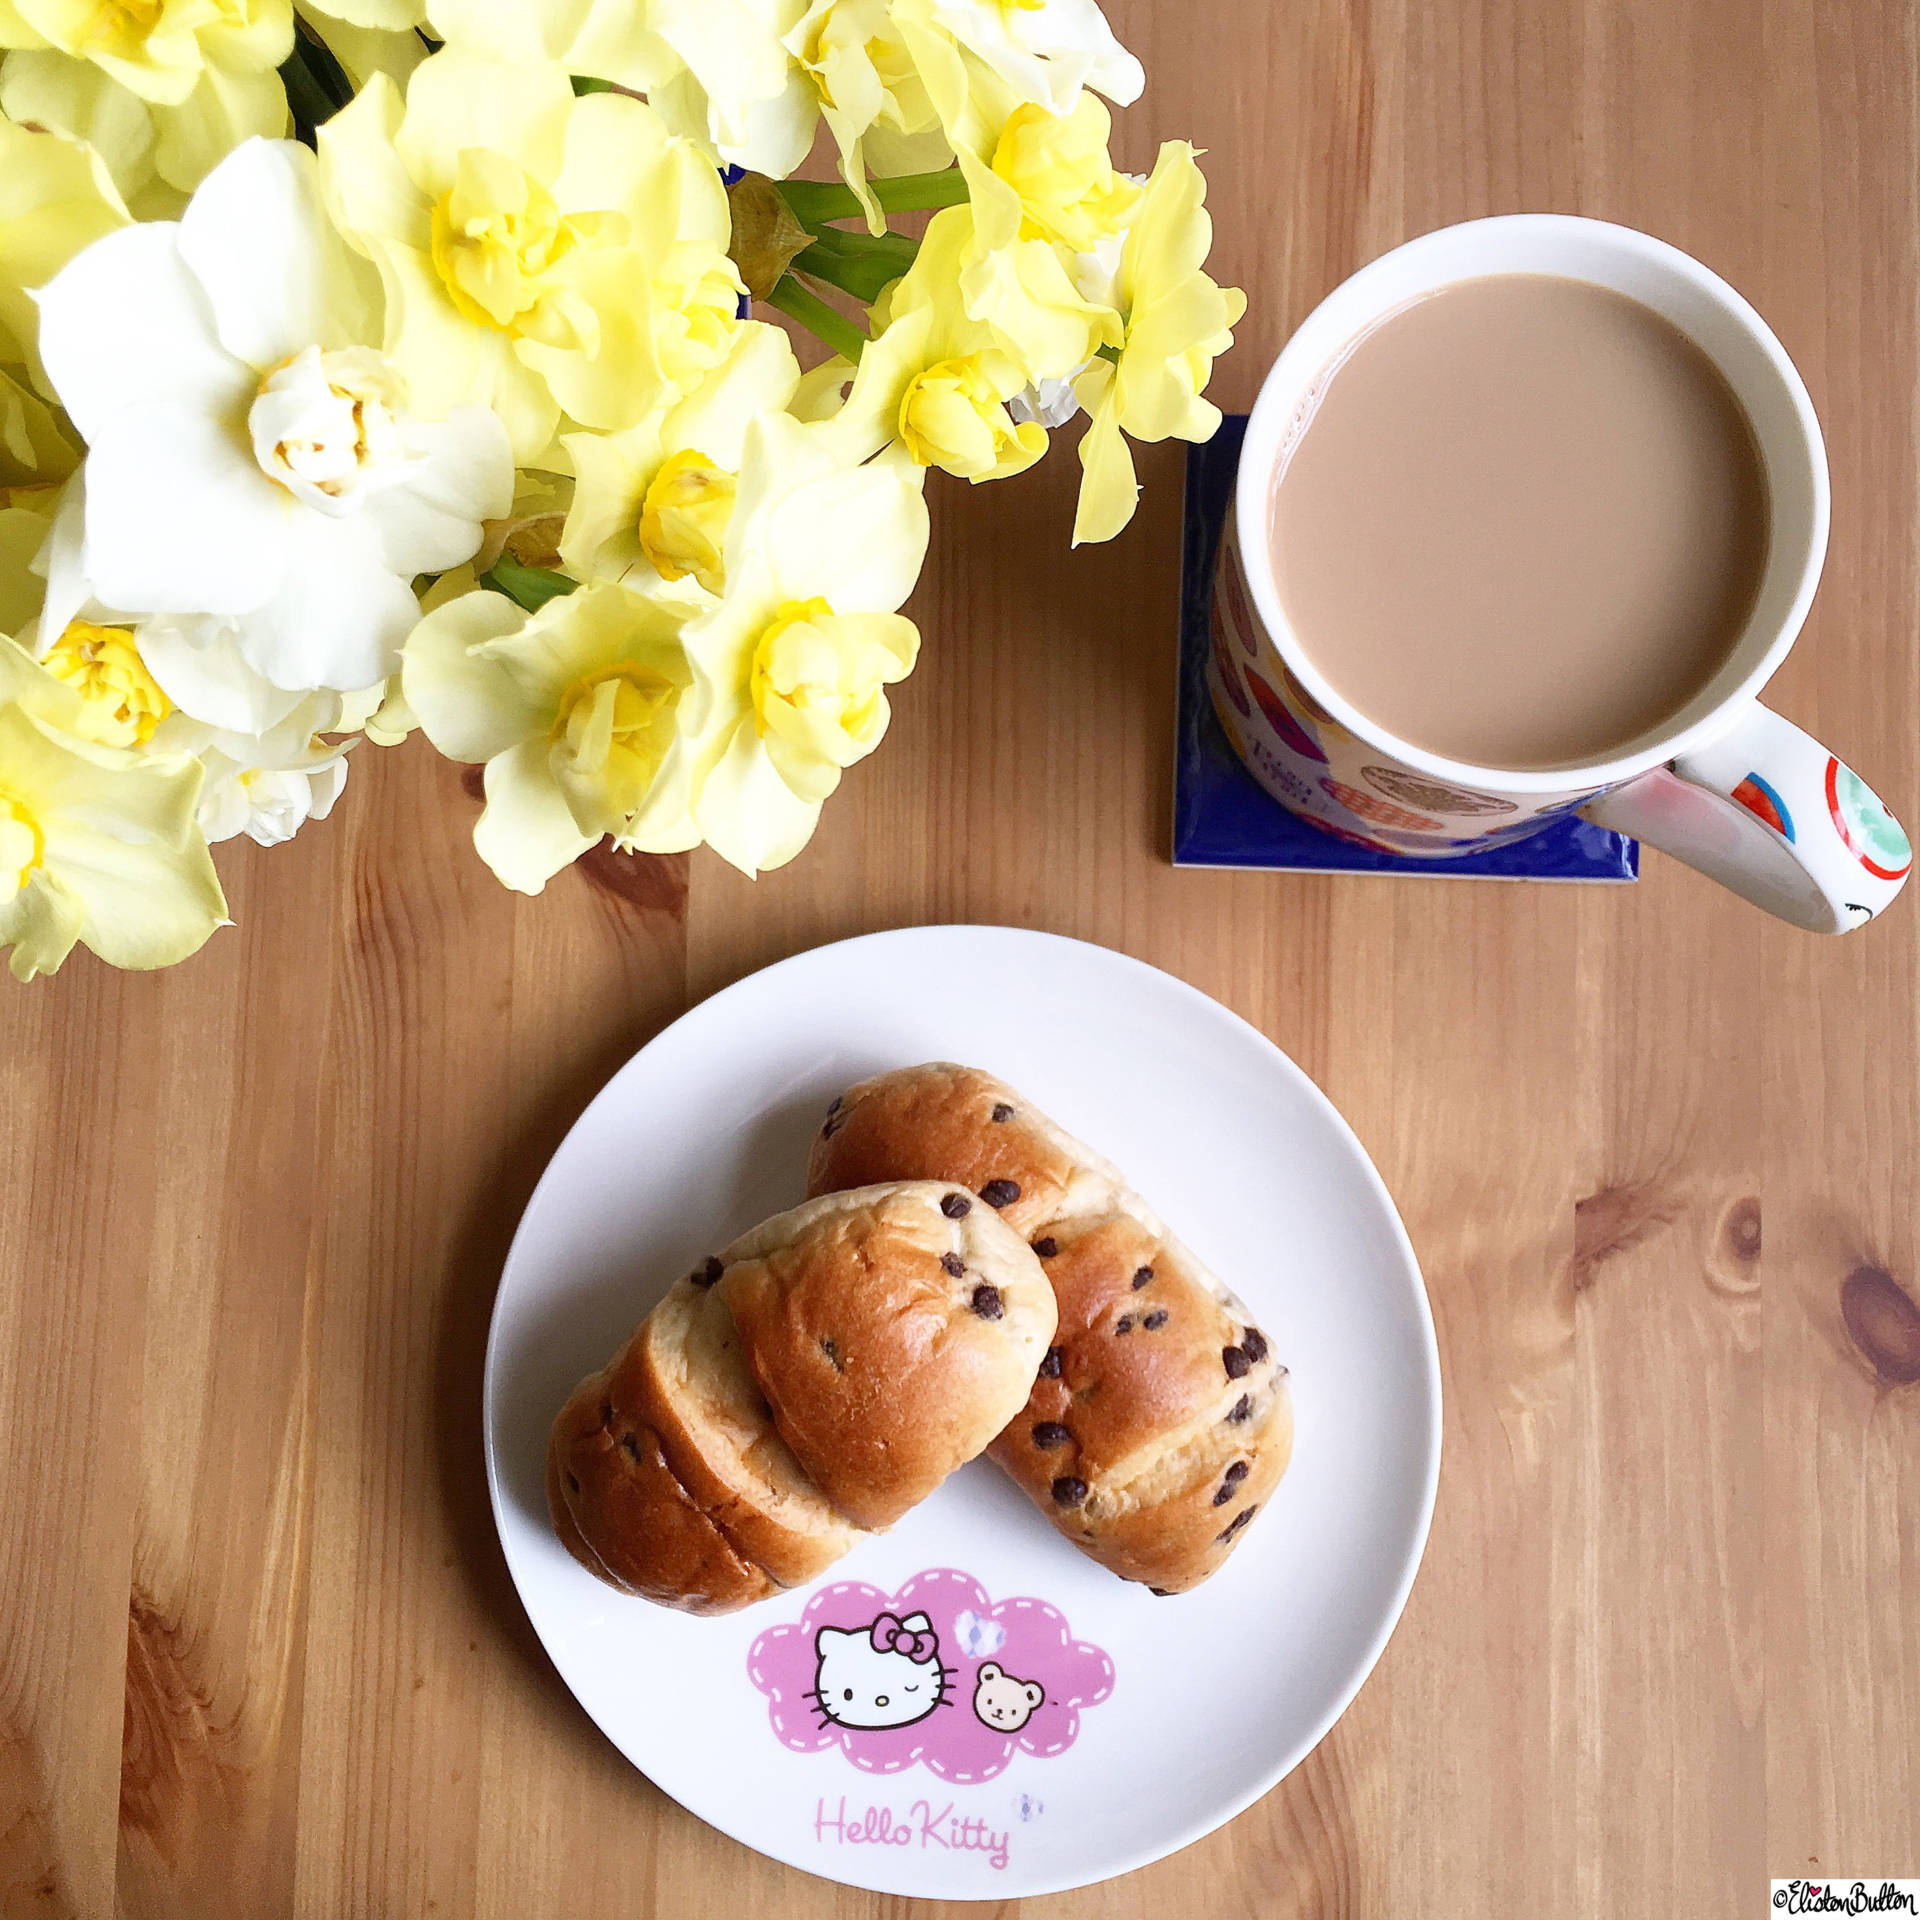 Day 24 - My Fave Food - Chocolate Chip Brioche, Coffee and Daffodils - Photo-a-Day – April 2016 at www.elistonbutton.com - Eliston Button - That Crafty Kid – Art, Design, Craft & Adventure.